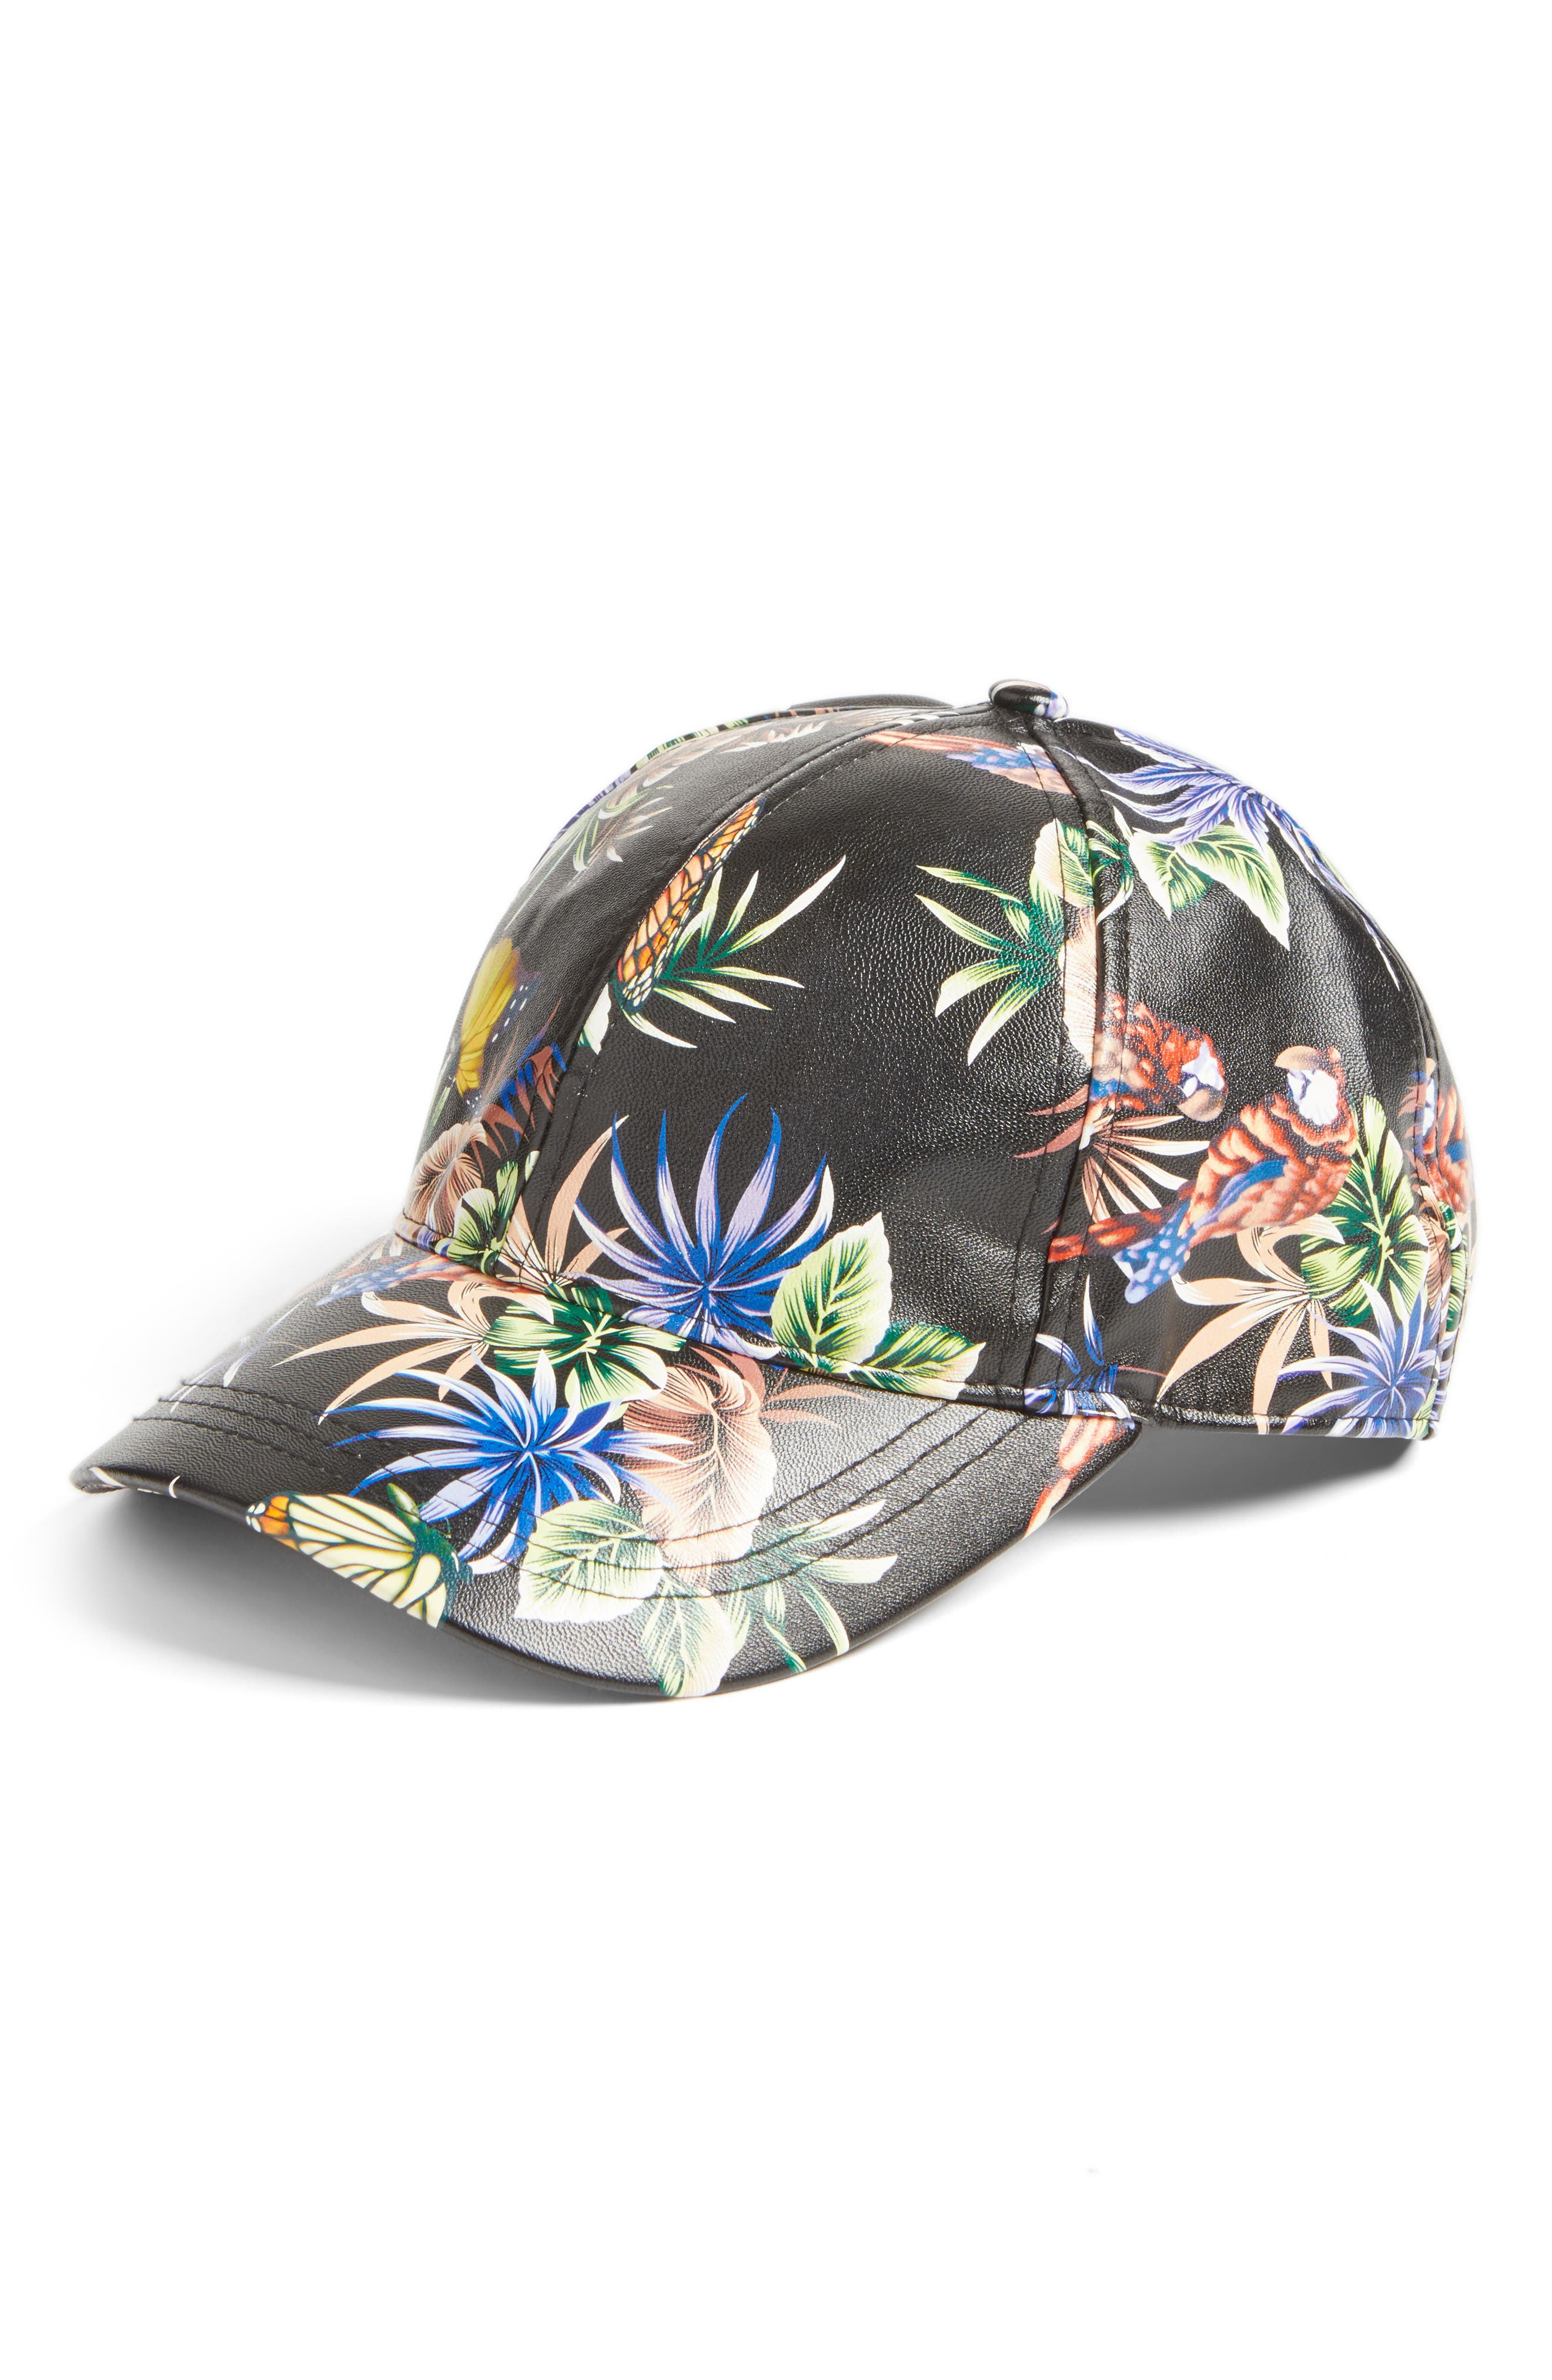 August Hat Floral Faux Leather Baseball Cap